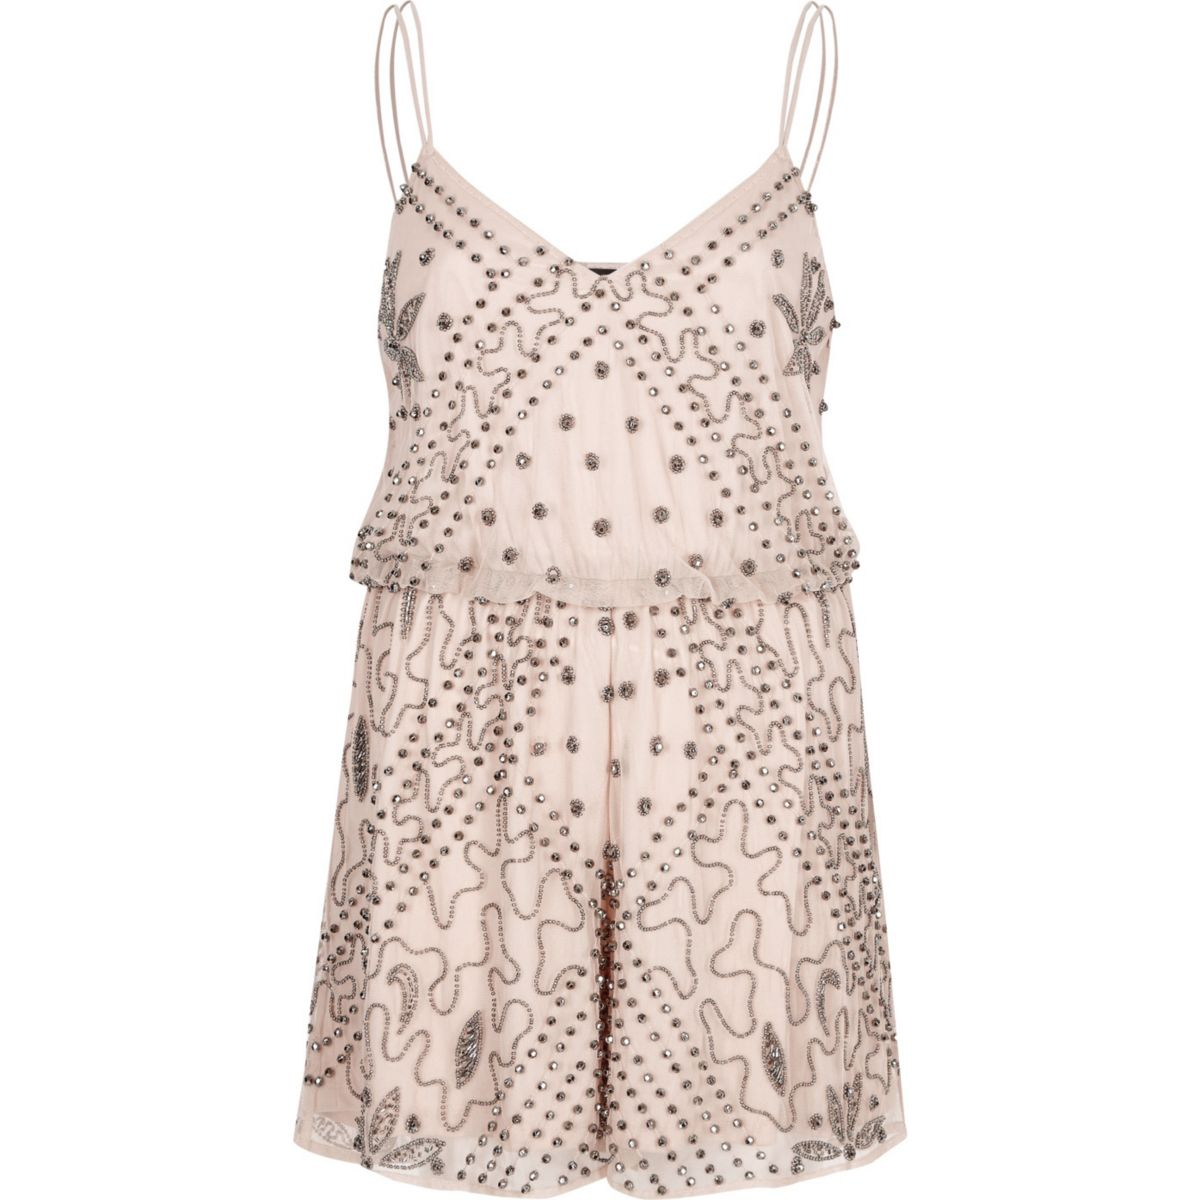 Pink nude embellished cami playsuit